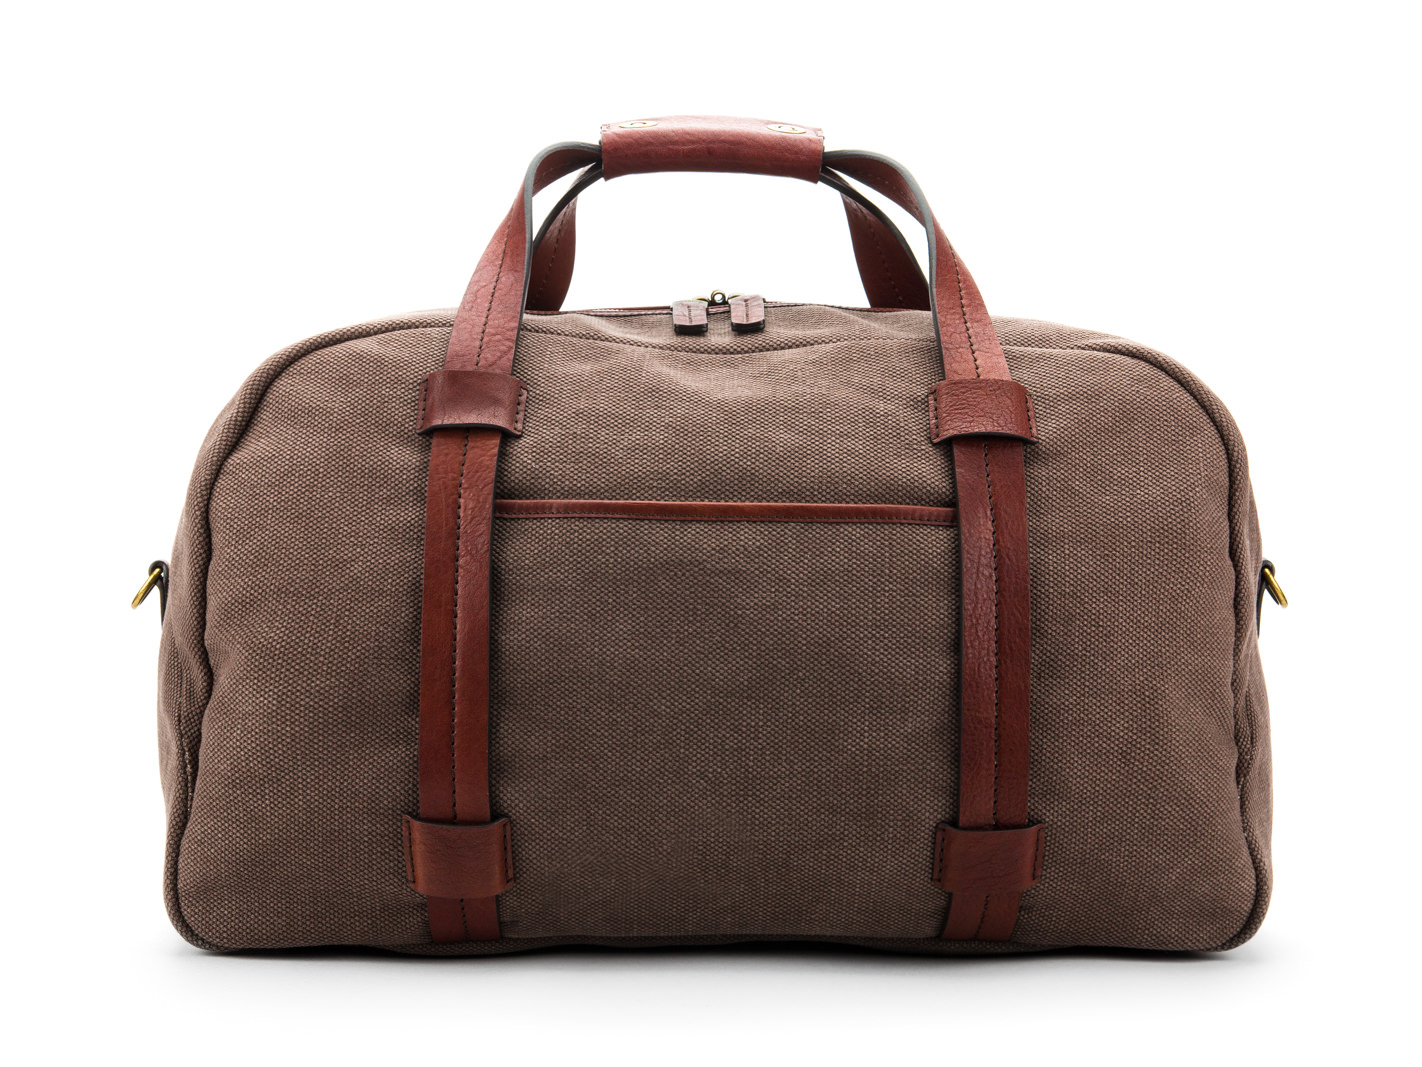 Fabric & Washed Leather Duffle-358 Grey & Brown - 358 Grey & Brown